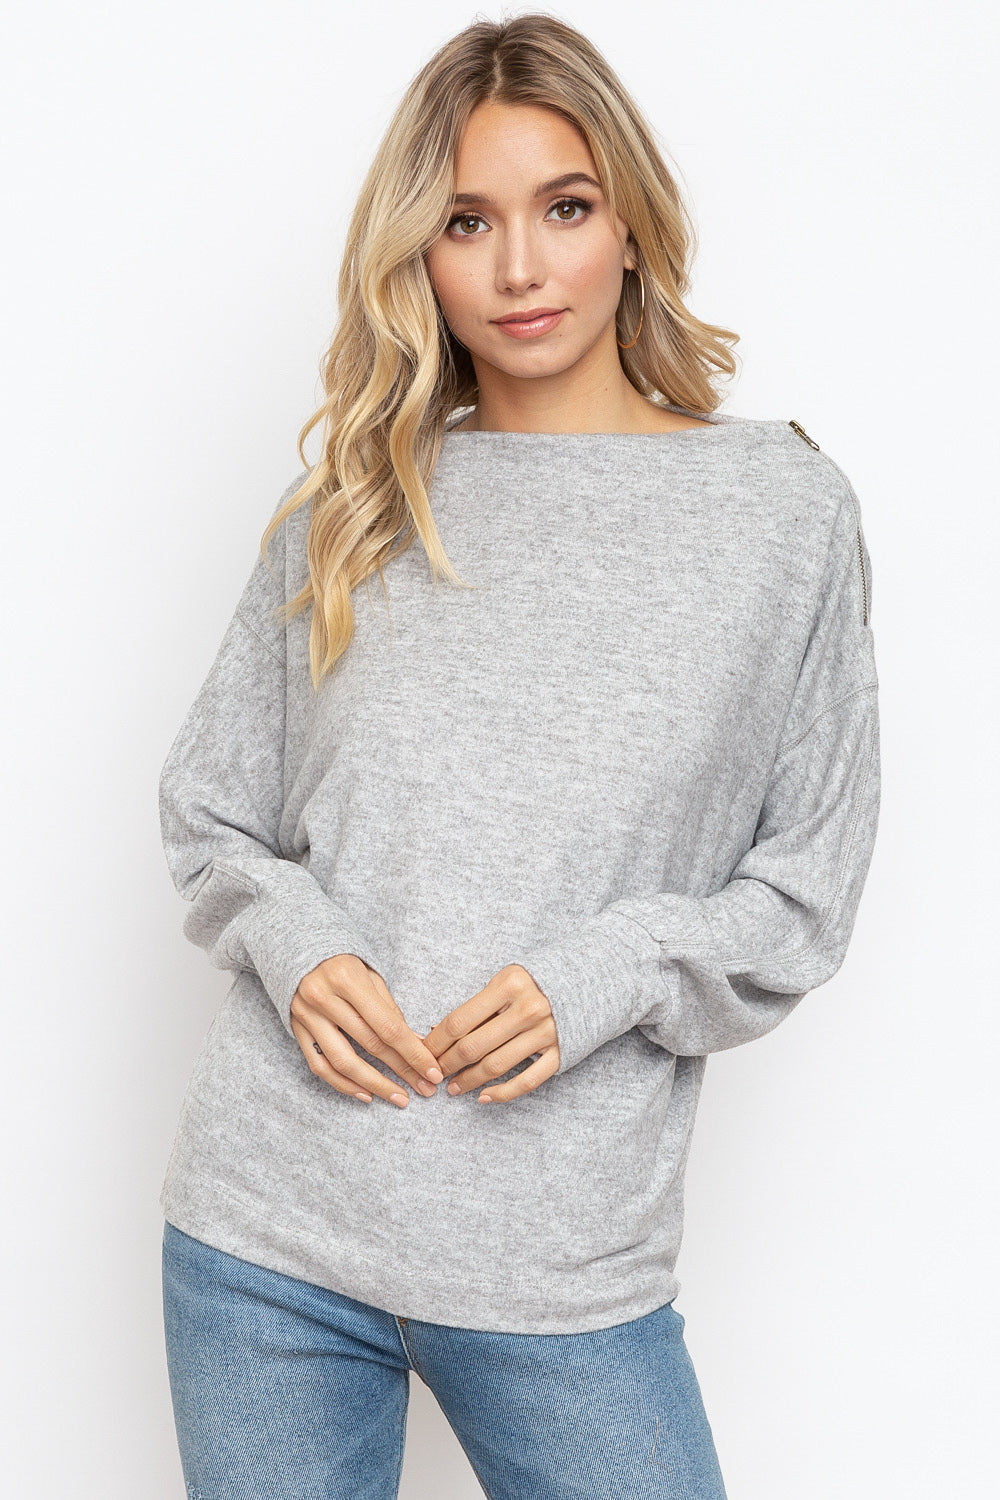 Asymmetrical Zipper Dolman Sweater